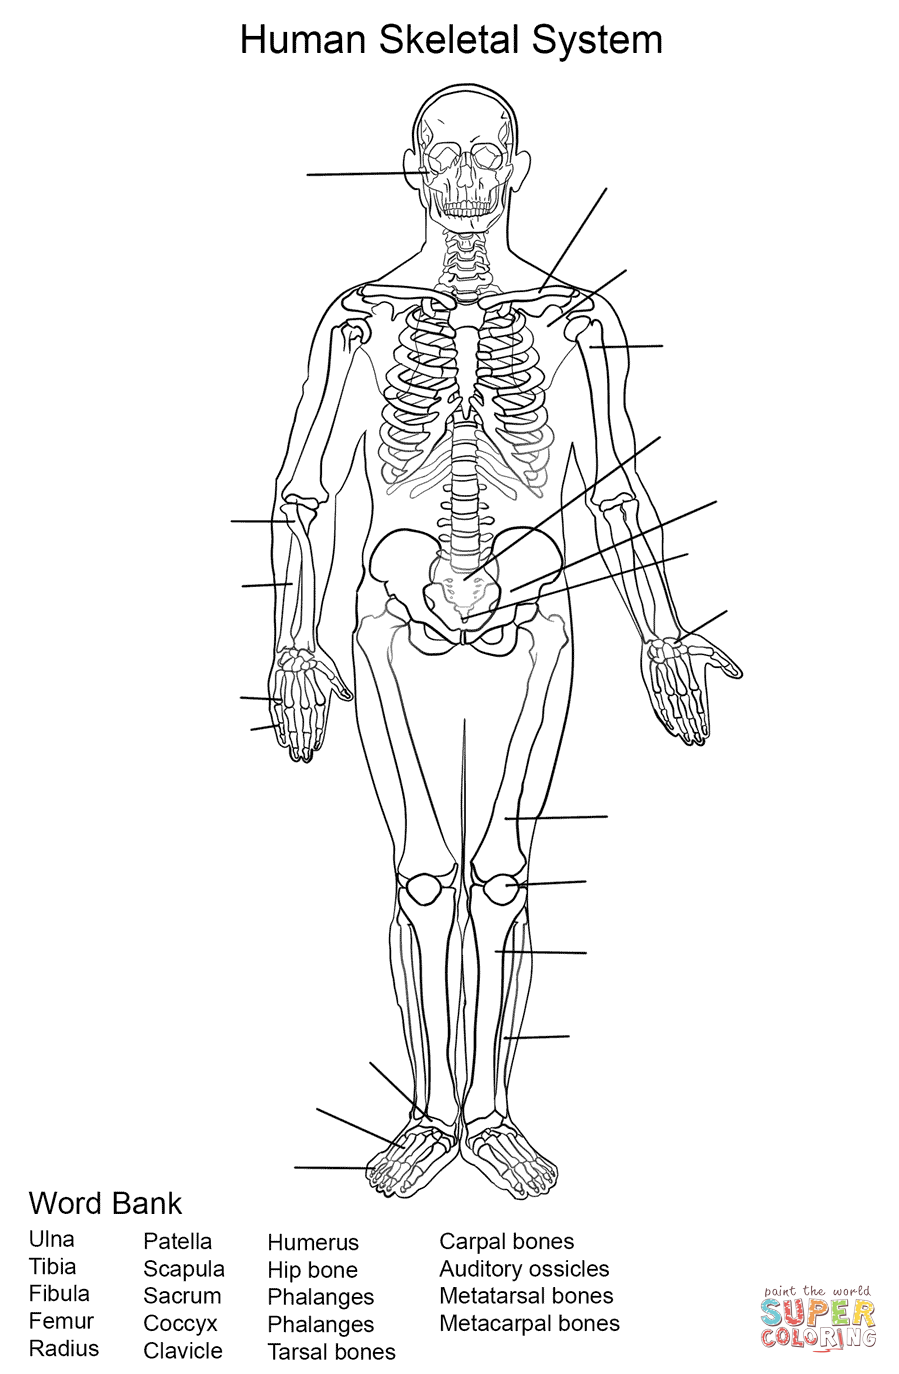 anatomy coloring book online anatomy drawing book download in 2020 anatomy coloring book anatomy coloring online